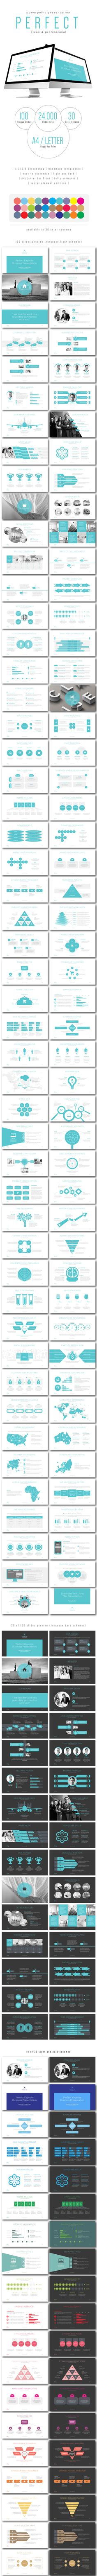 Multipurpose PowerPoint Presentation (Vol. 10) (Powerpoint Templates)